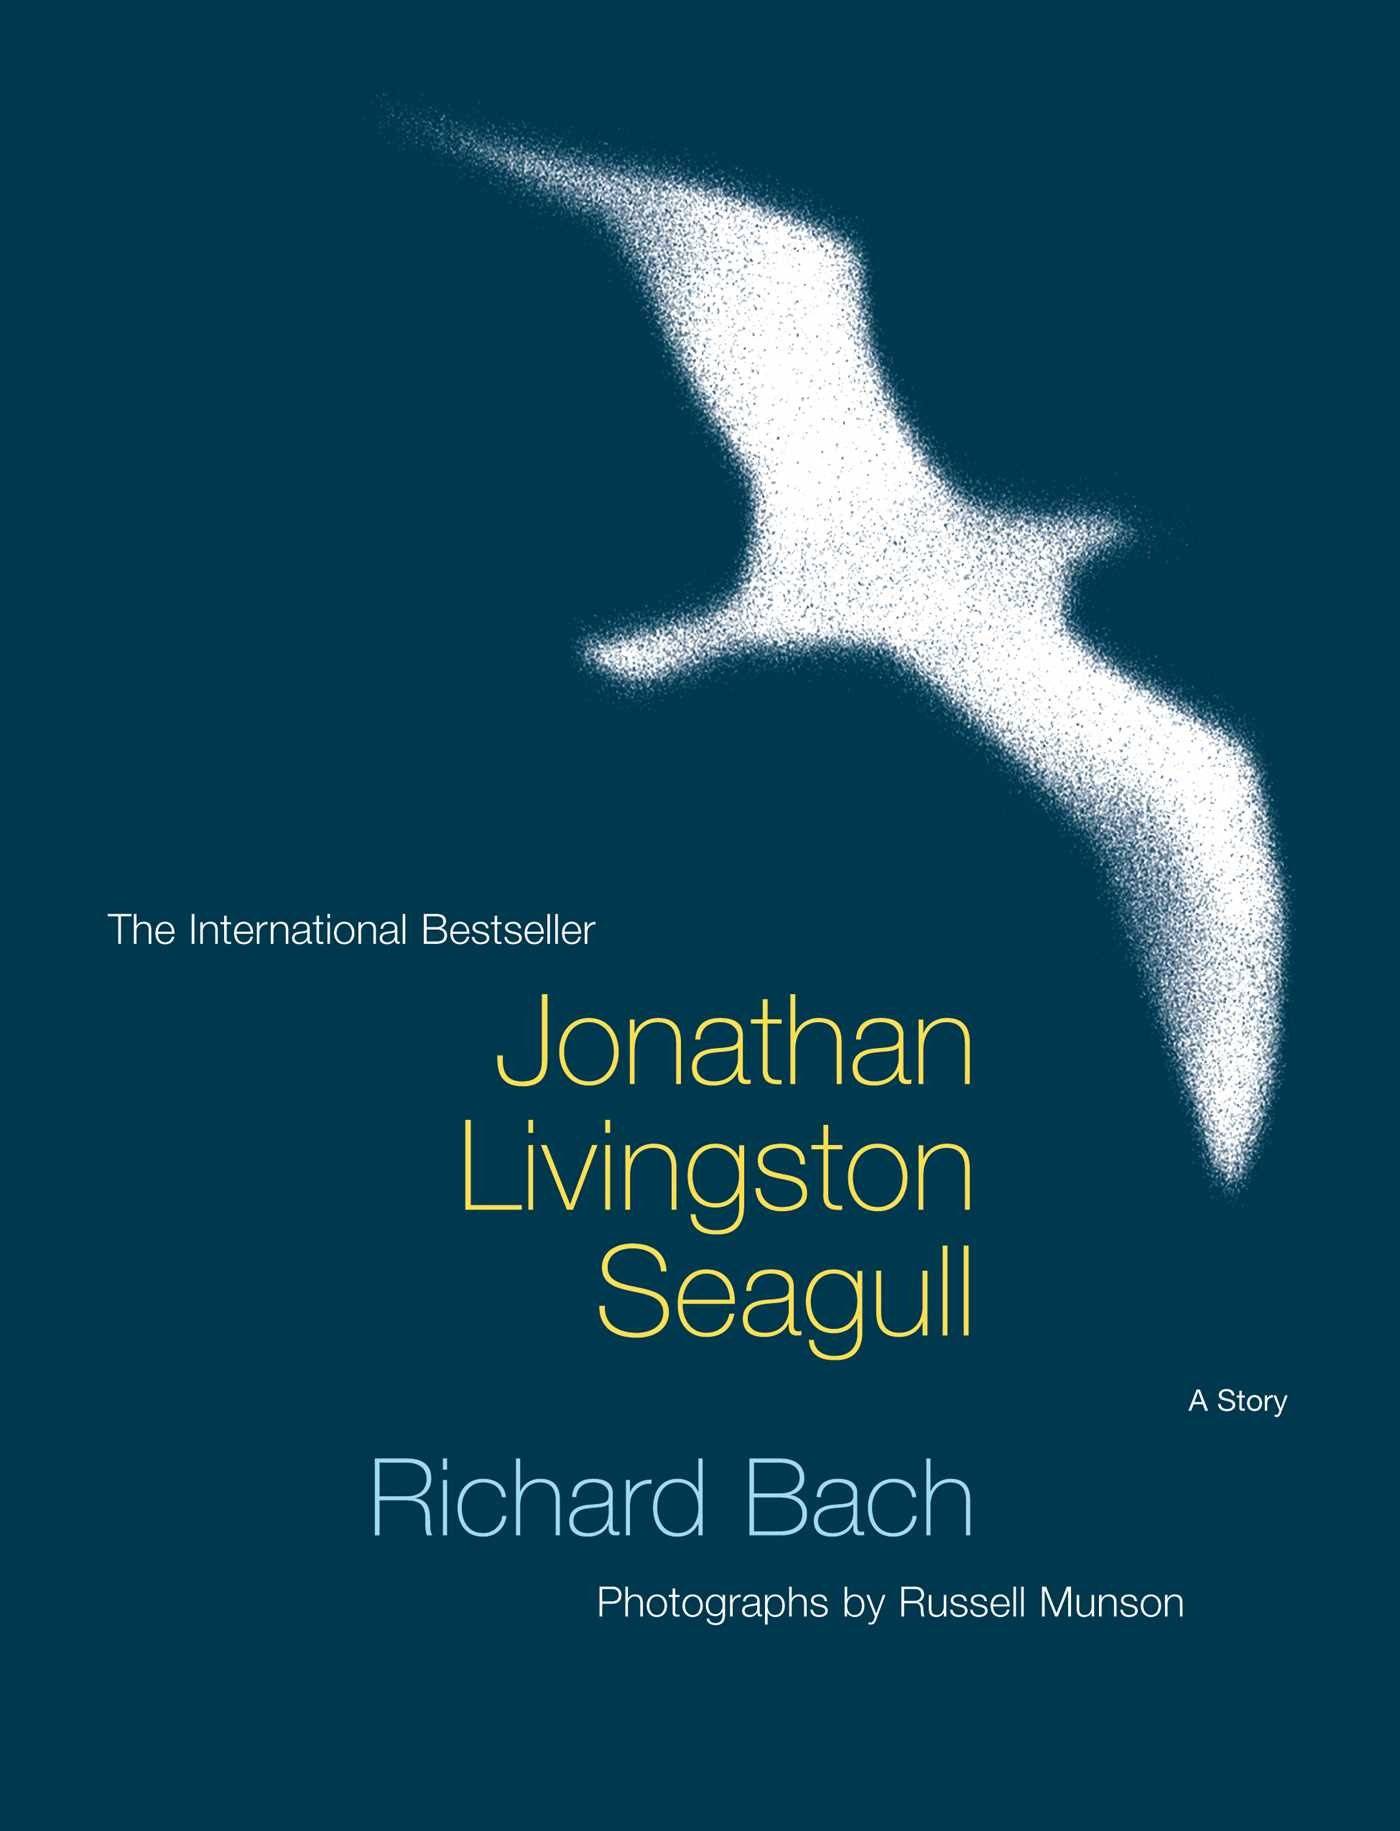 Jonathan Livingston Seagull: A story By Richard Bach